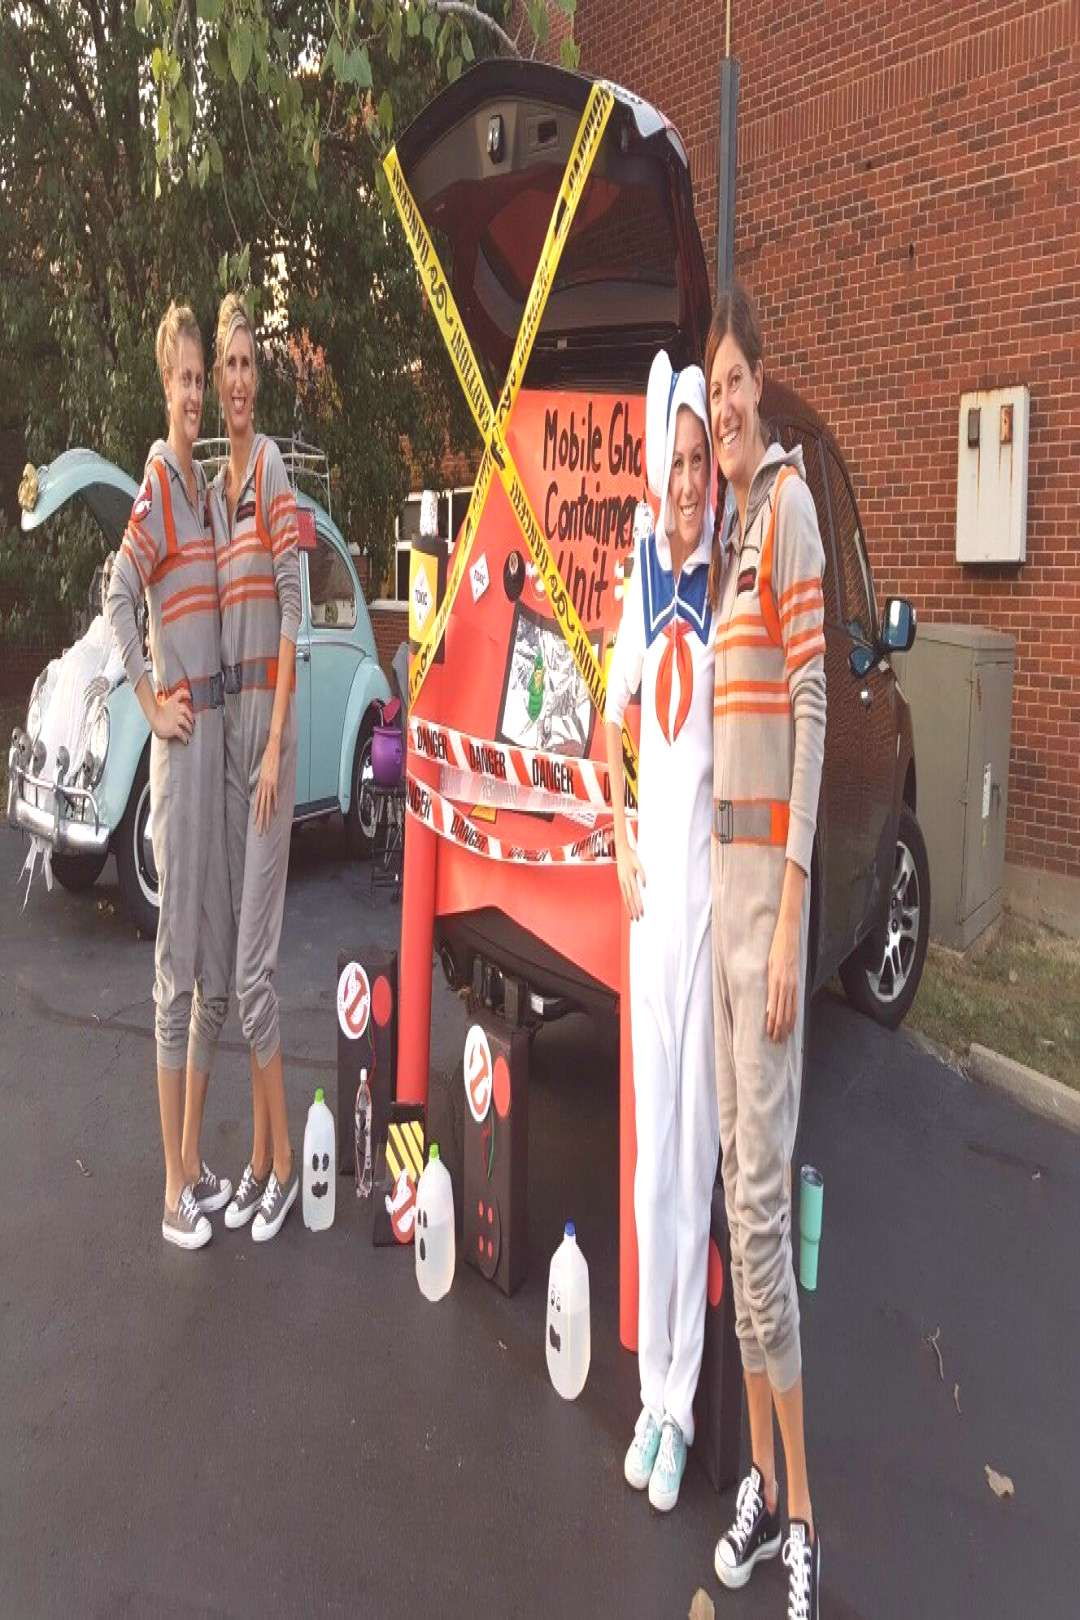 Ghostbusters Trunk or Treat.#ghostbusters